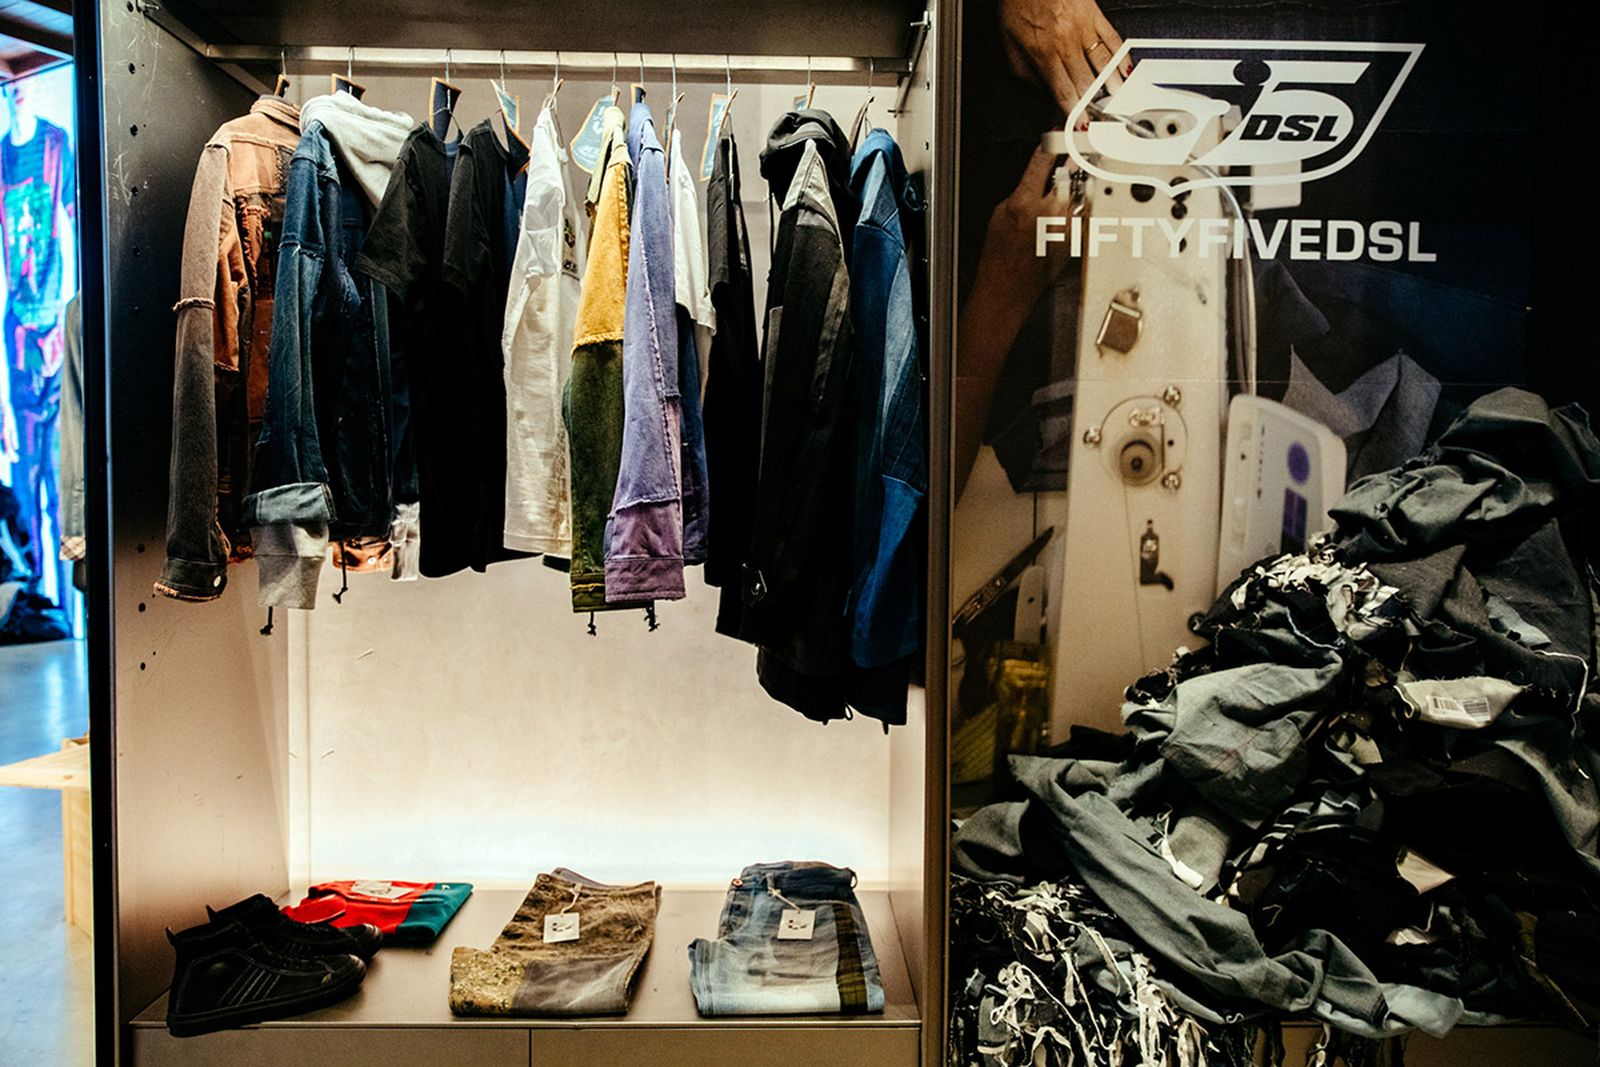 08diesel-upcycling-for-55dsl-andrea-rosso-